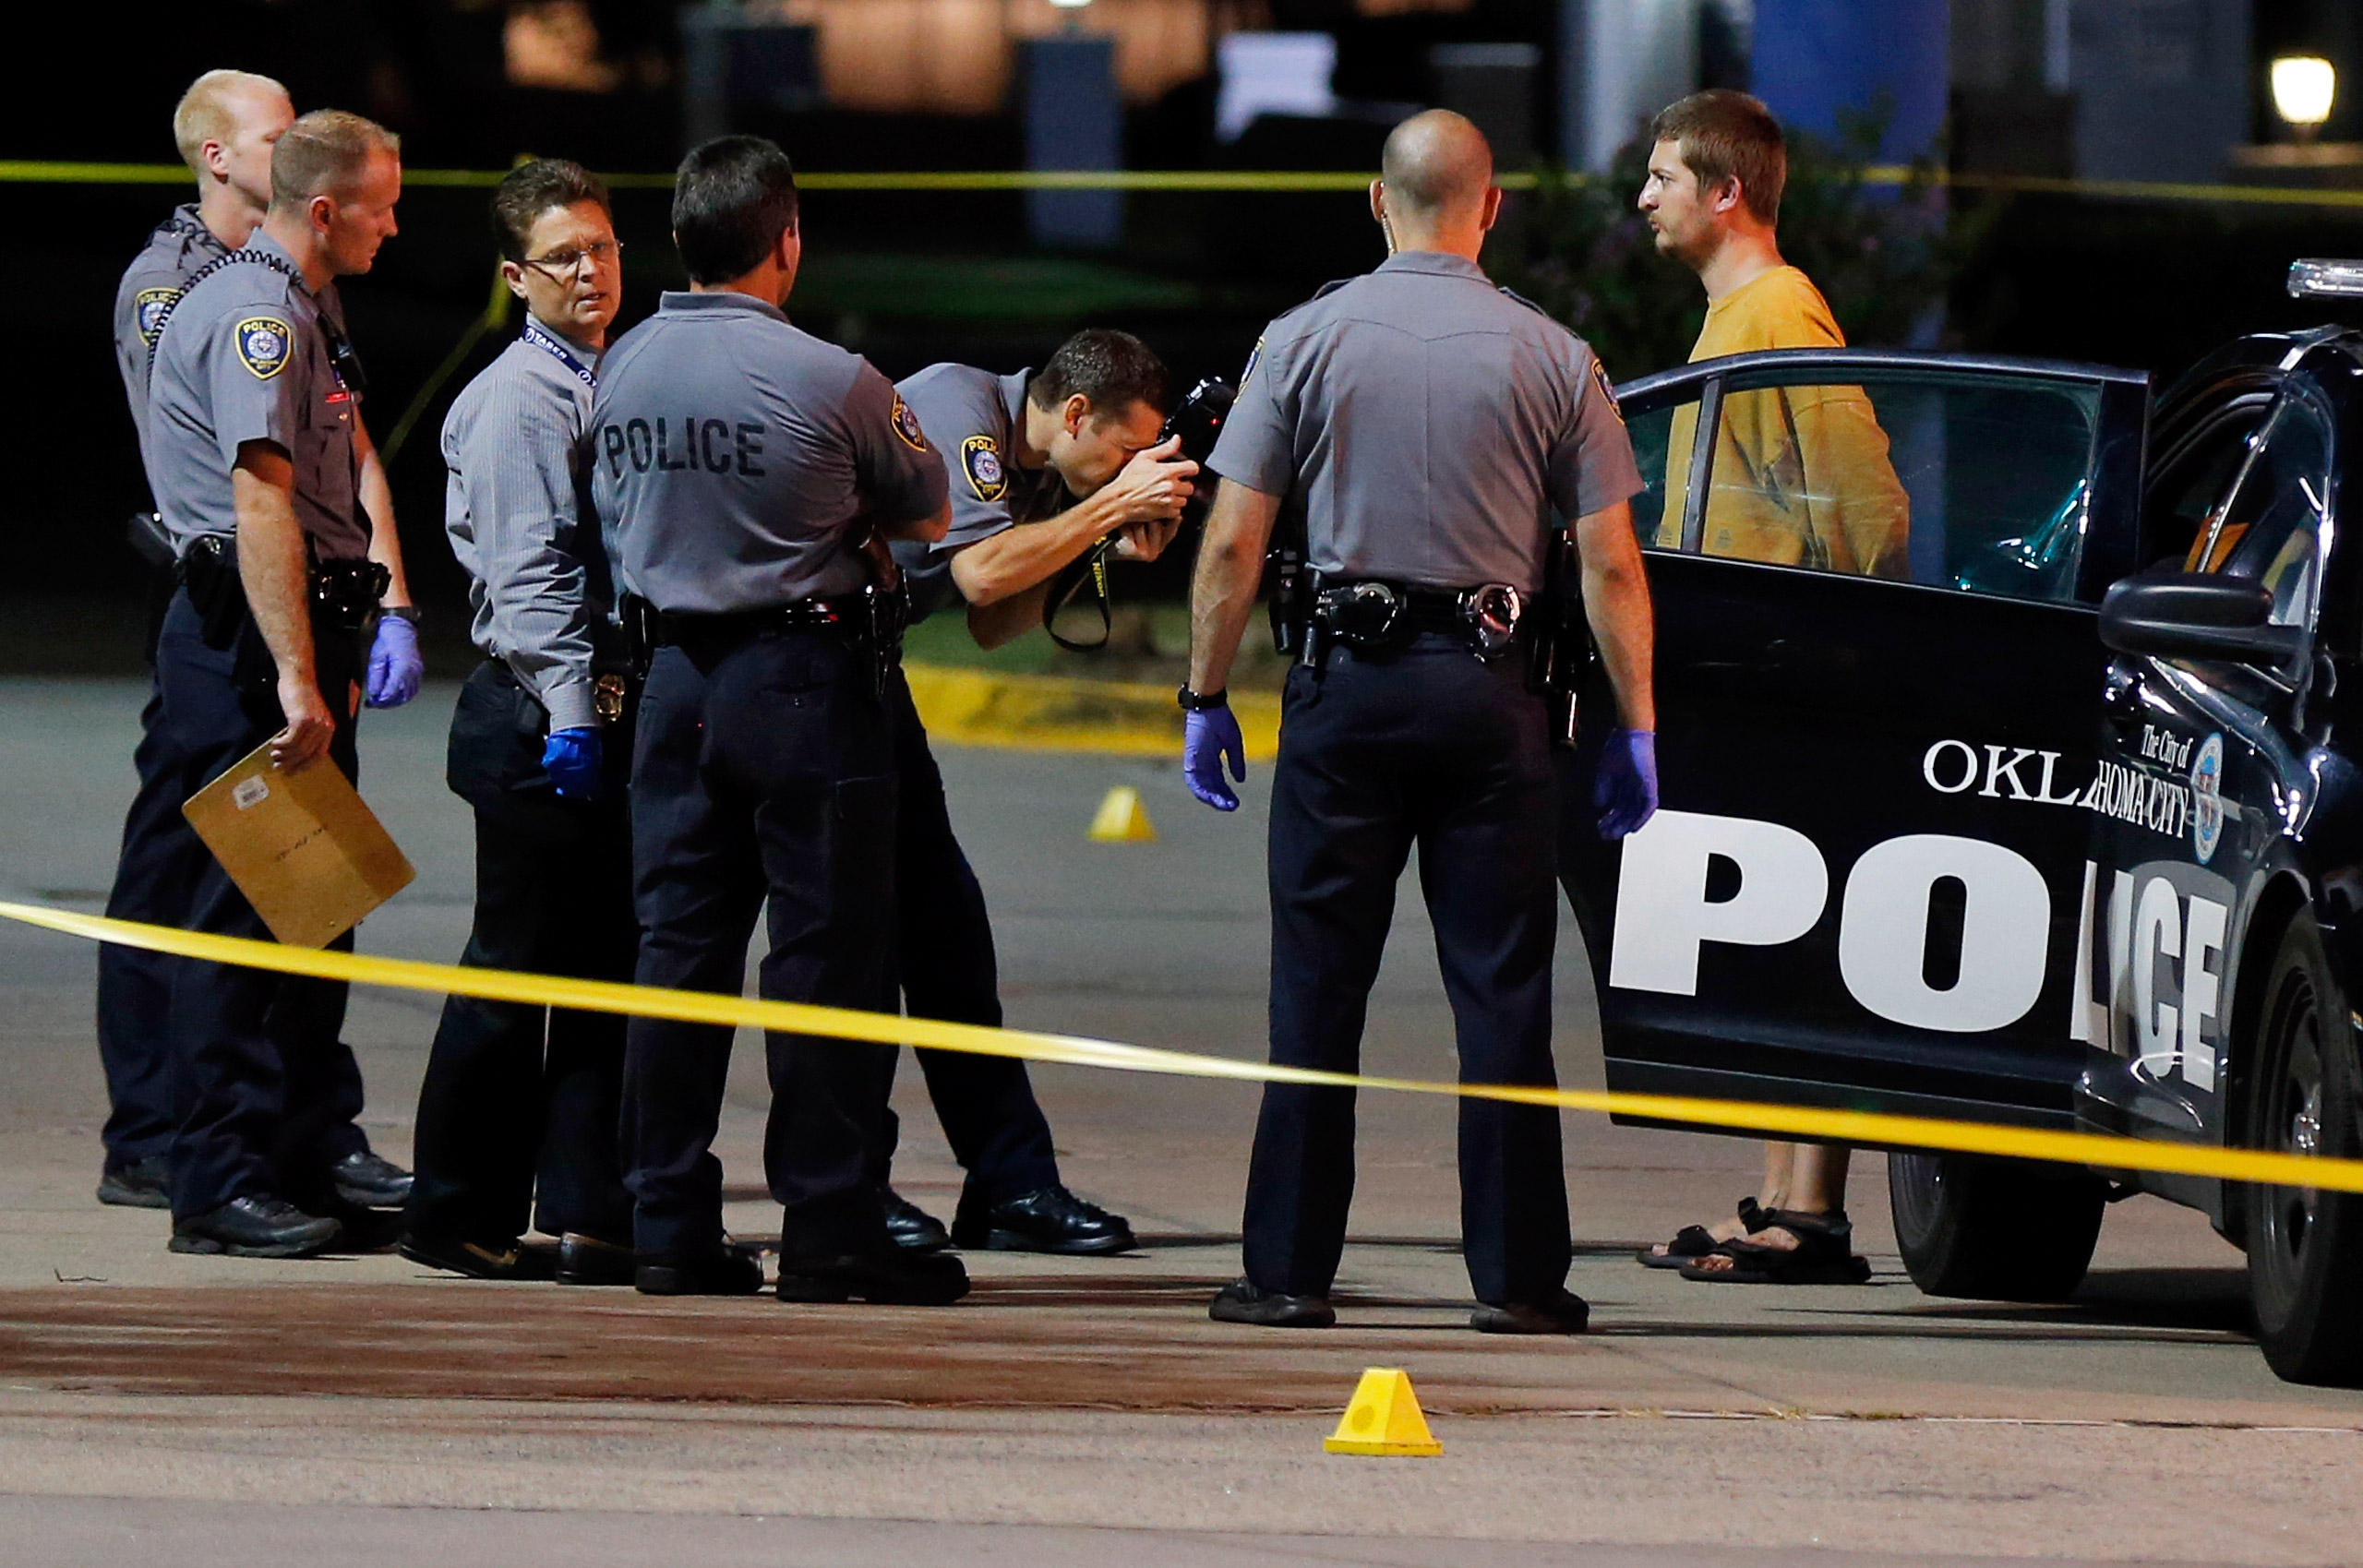 Police arresting Christian Costello, son of Oklahoma Labor Commissioner Mark Costello, on a first-degree murder complaint for fatally stabbing his father at a restaurant in Oklahoma City, on Aug. 23, 2015.